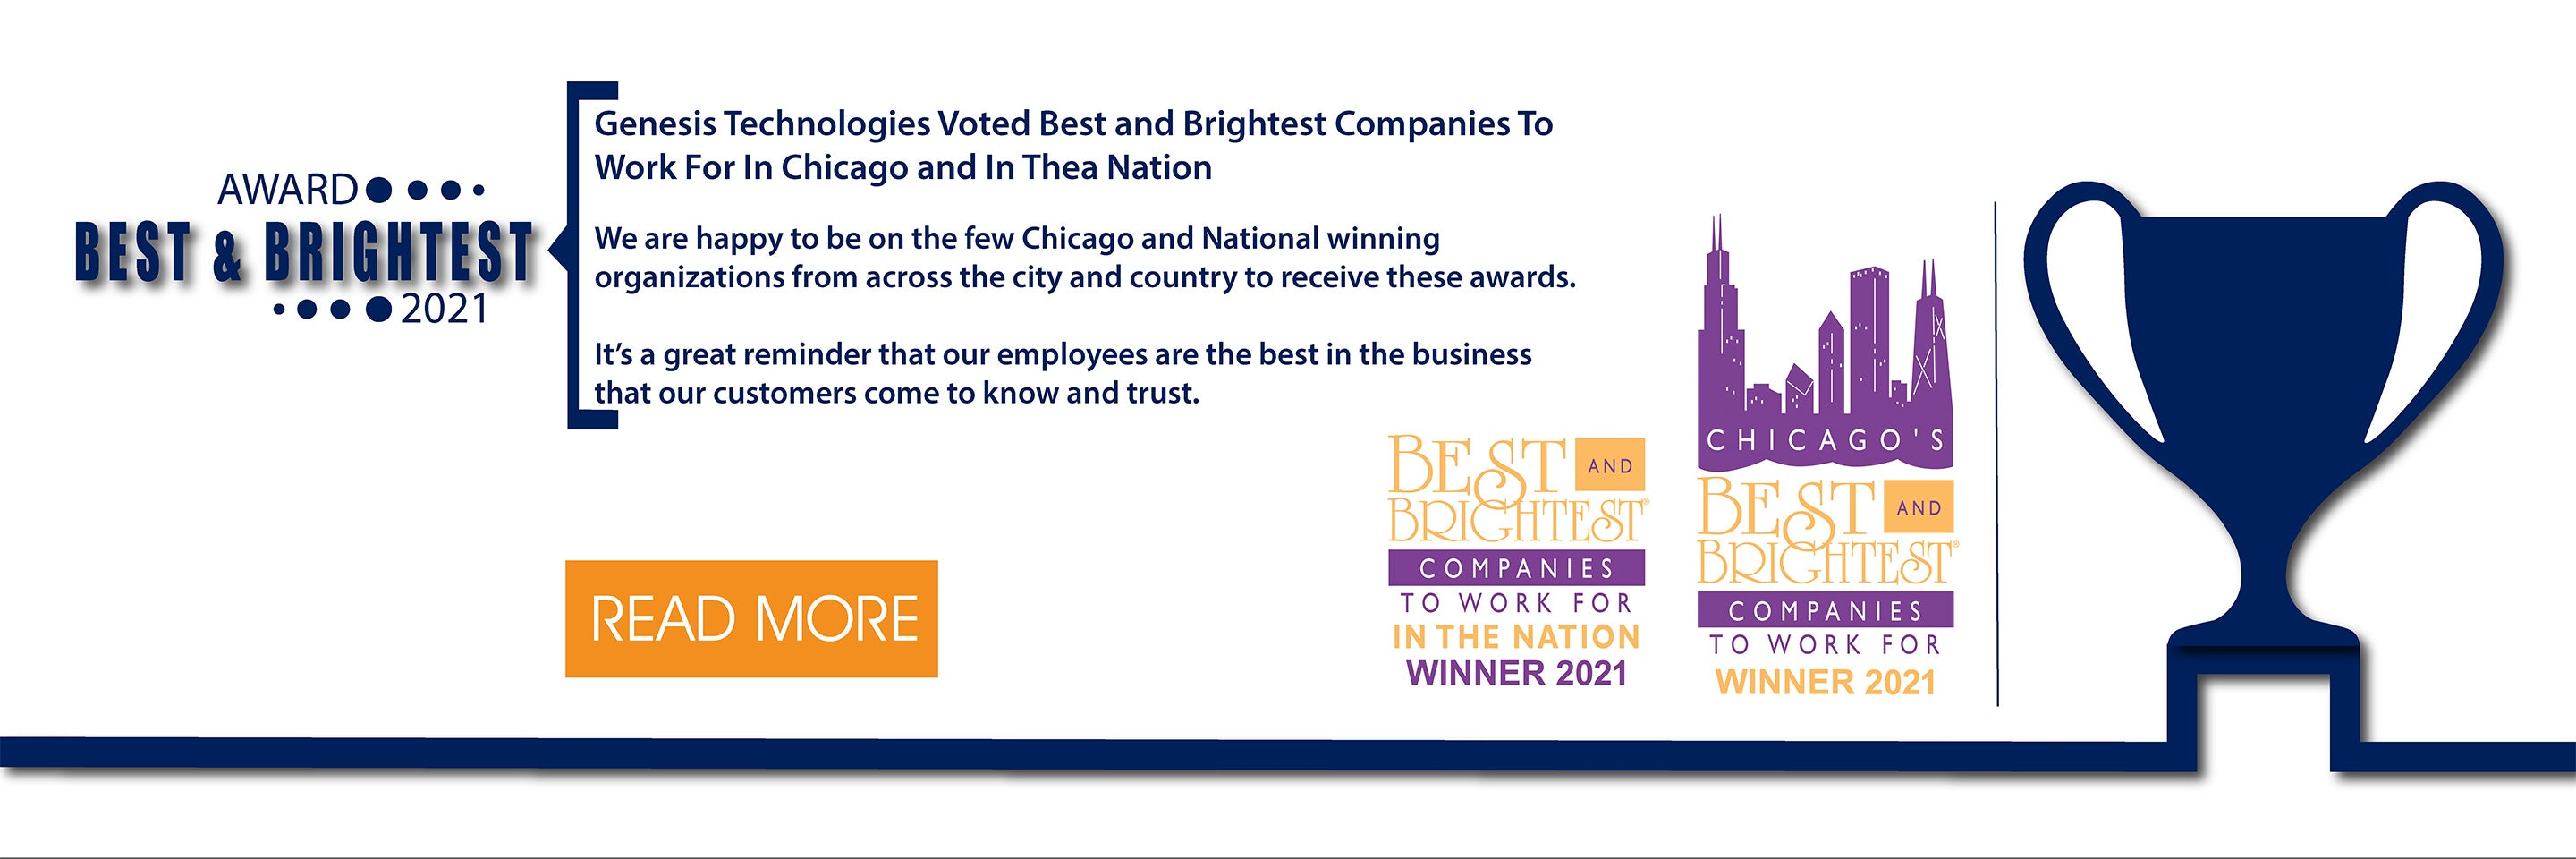 Genesis Technologies Recognized as one of the 2021 Best and Brightest Companies to Work For In The Nation